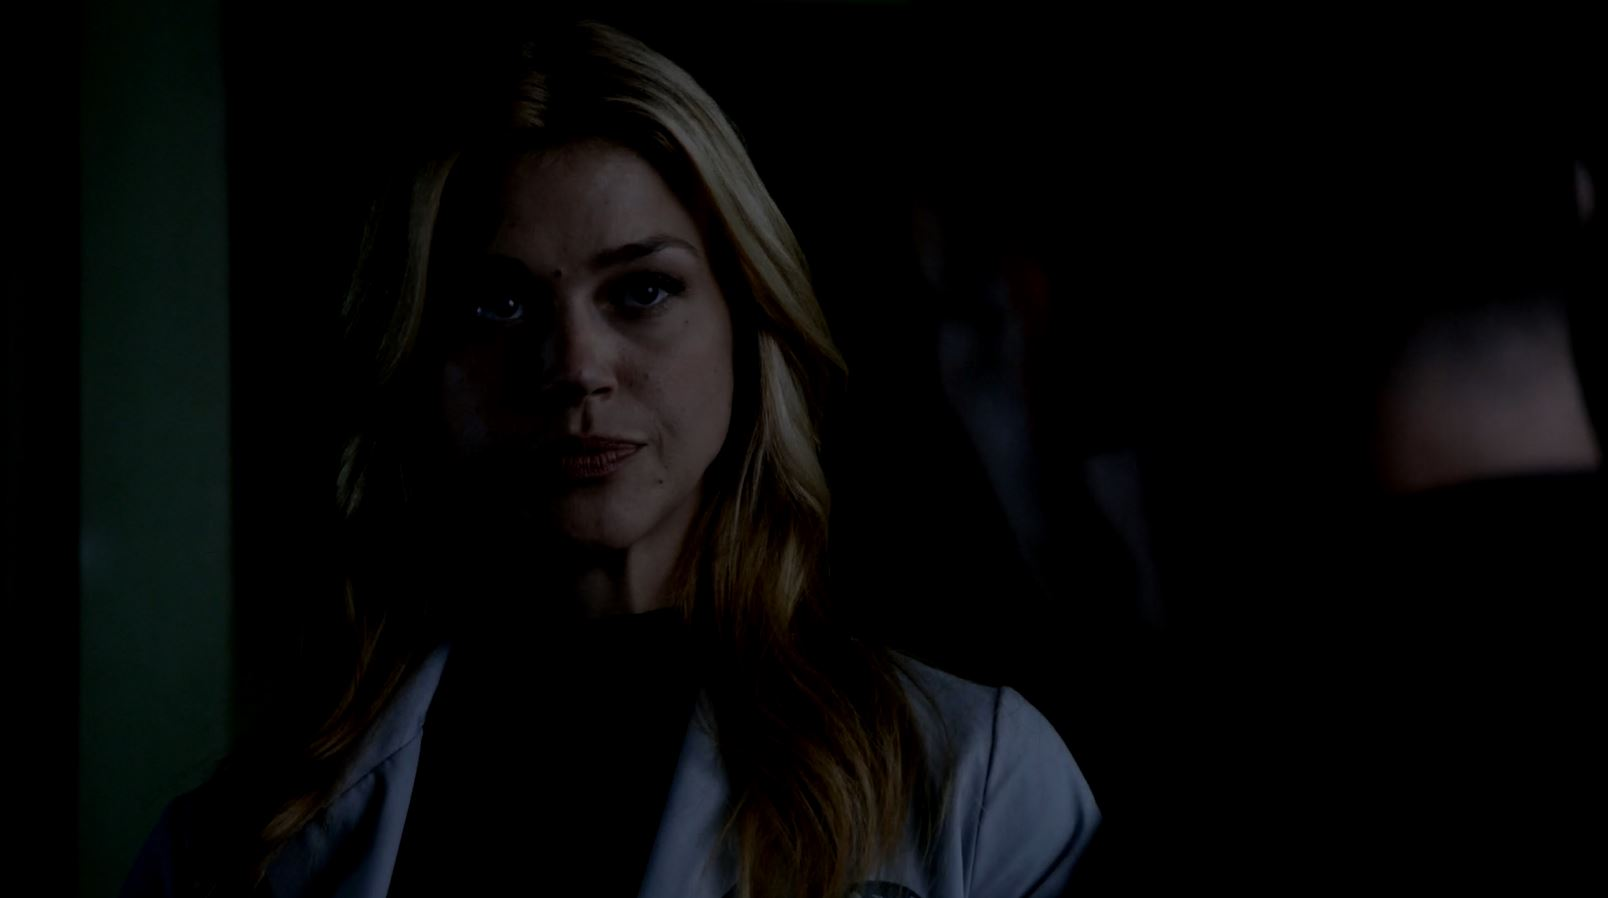 Adrianne Palicki as Bobbi Morse. Agents of SHIELD S3Ep1 Laws of Nature Review